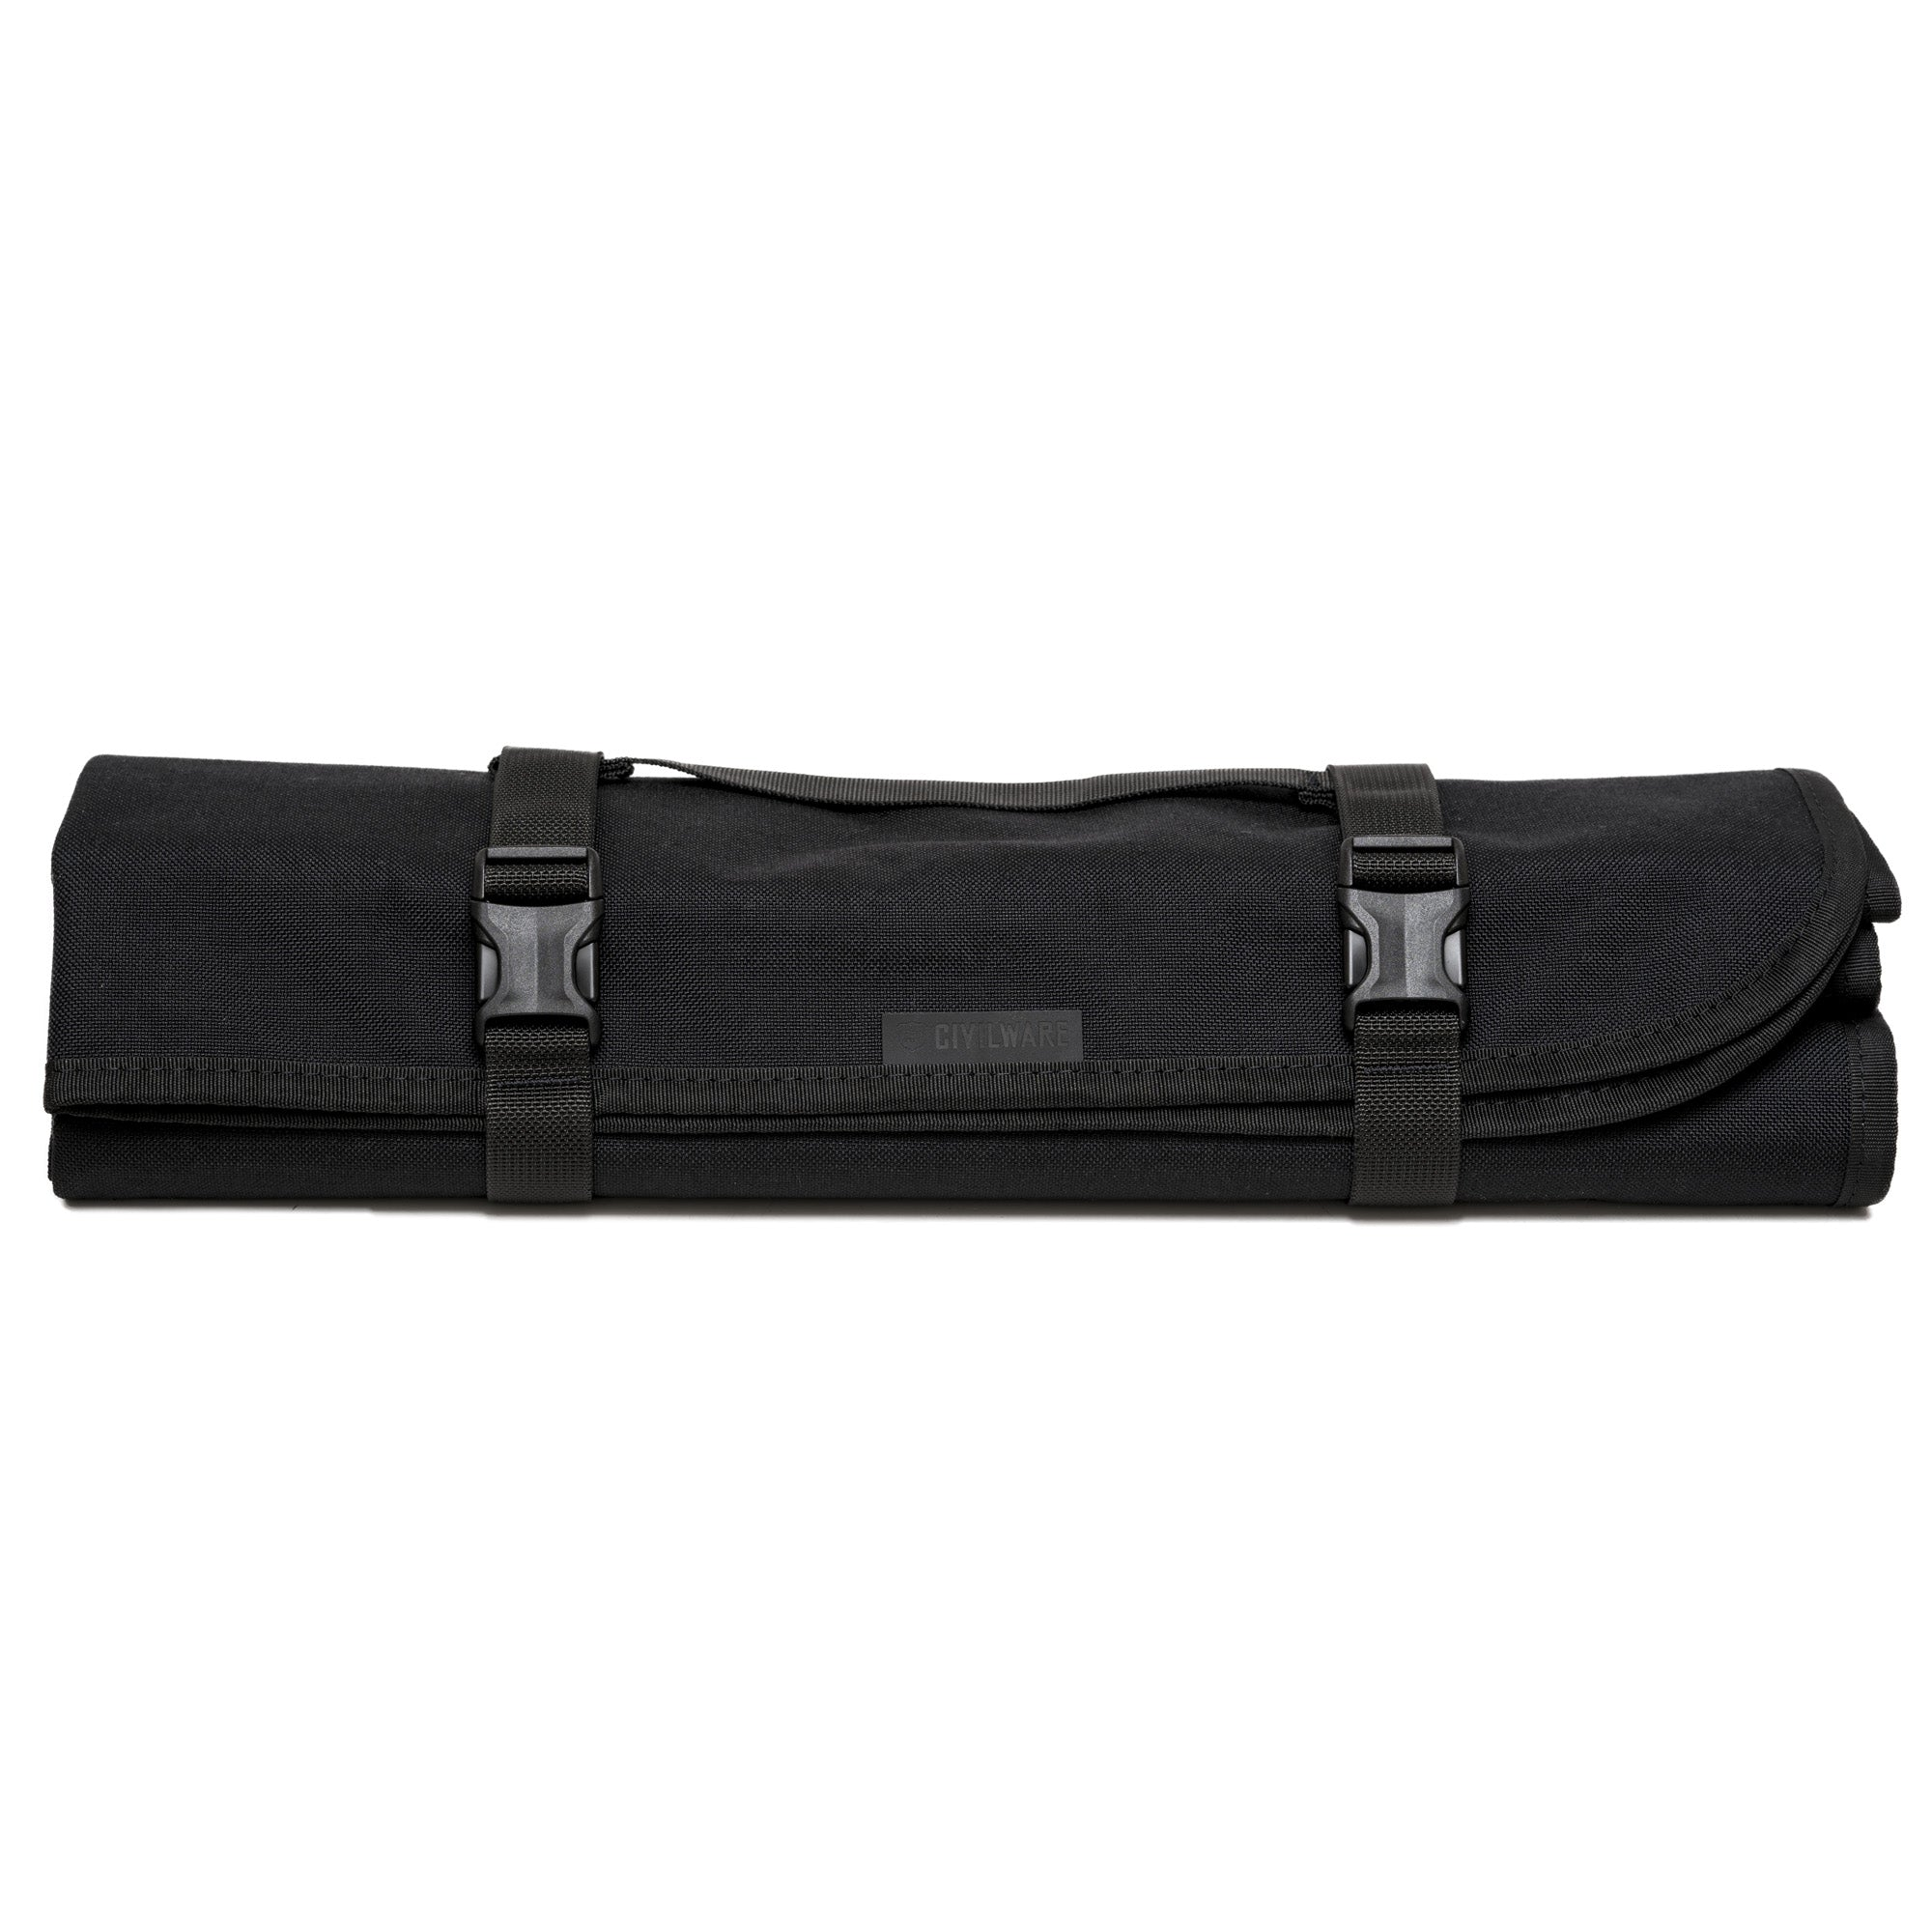 All Terrain Bedroll - Black